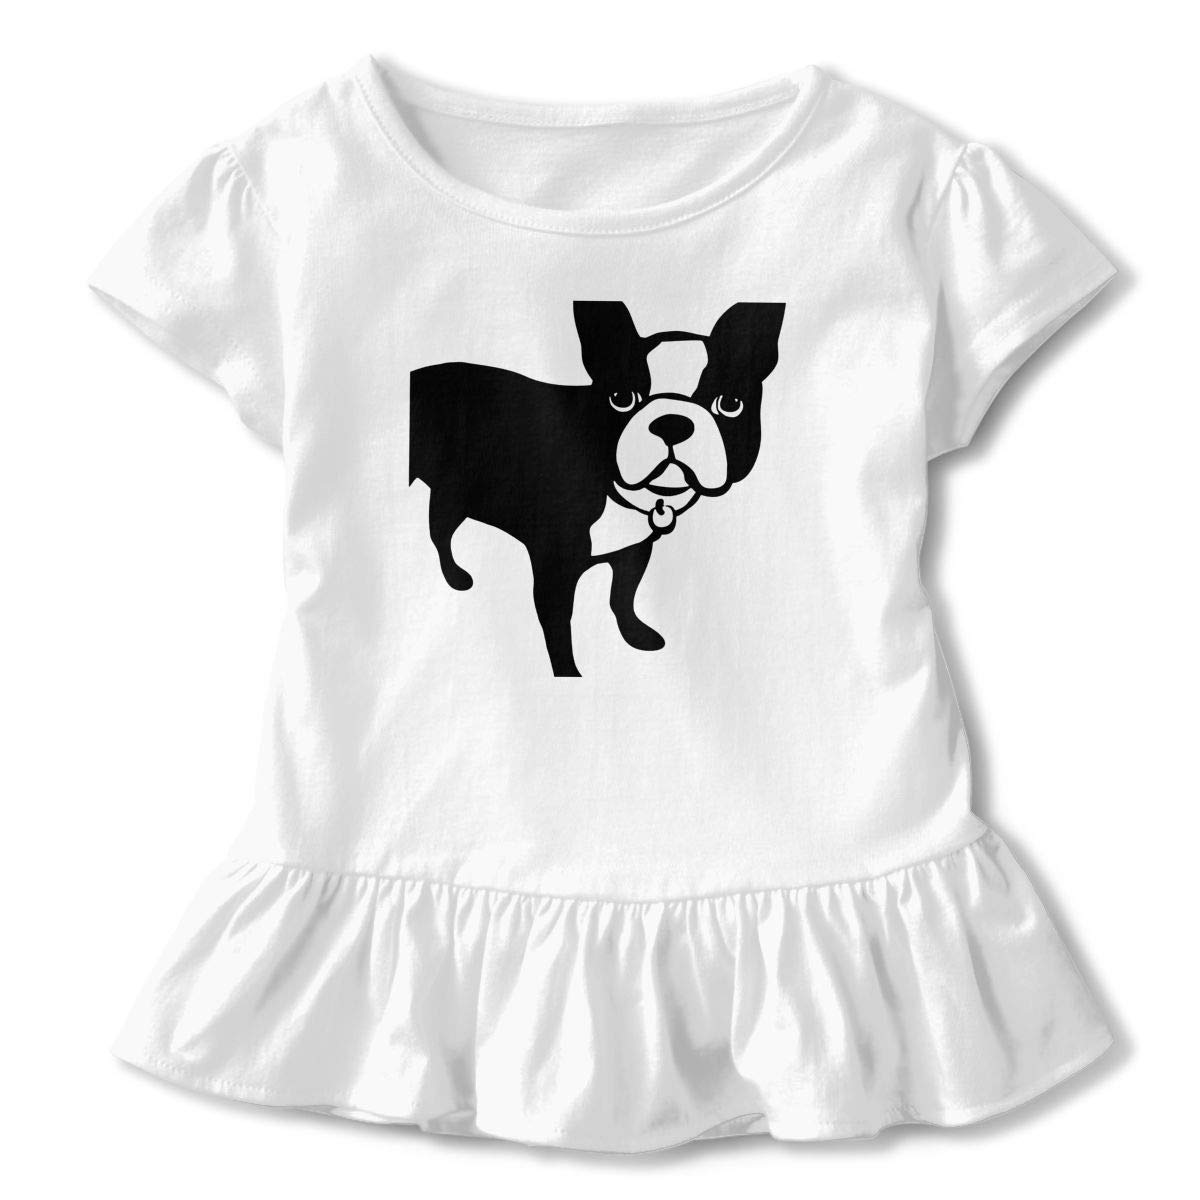 QUZtww Dog Toddler Baby Girl Basic Printed Ruffle Short Sleeve Cotton T Shirts Tops Tee Clothes White